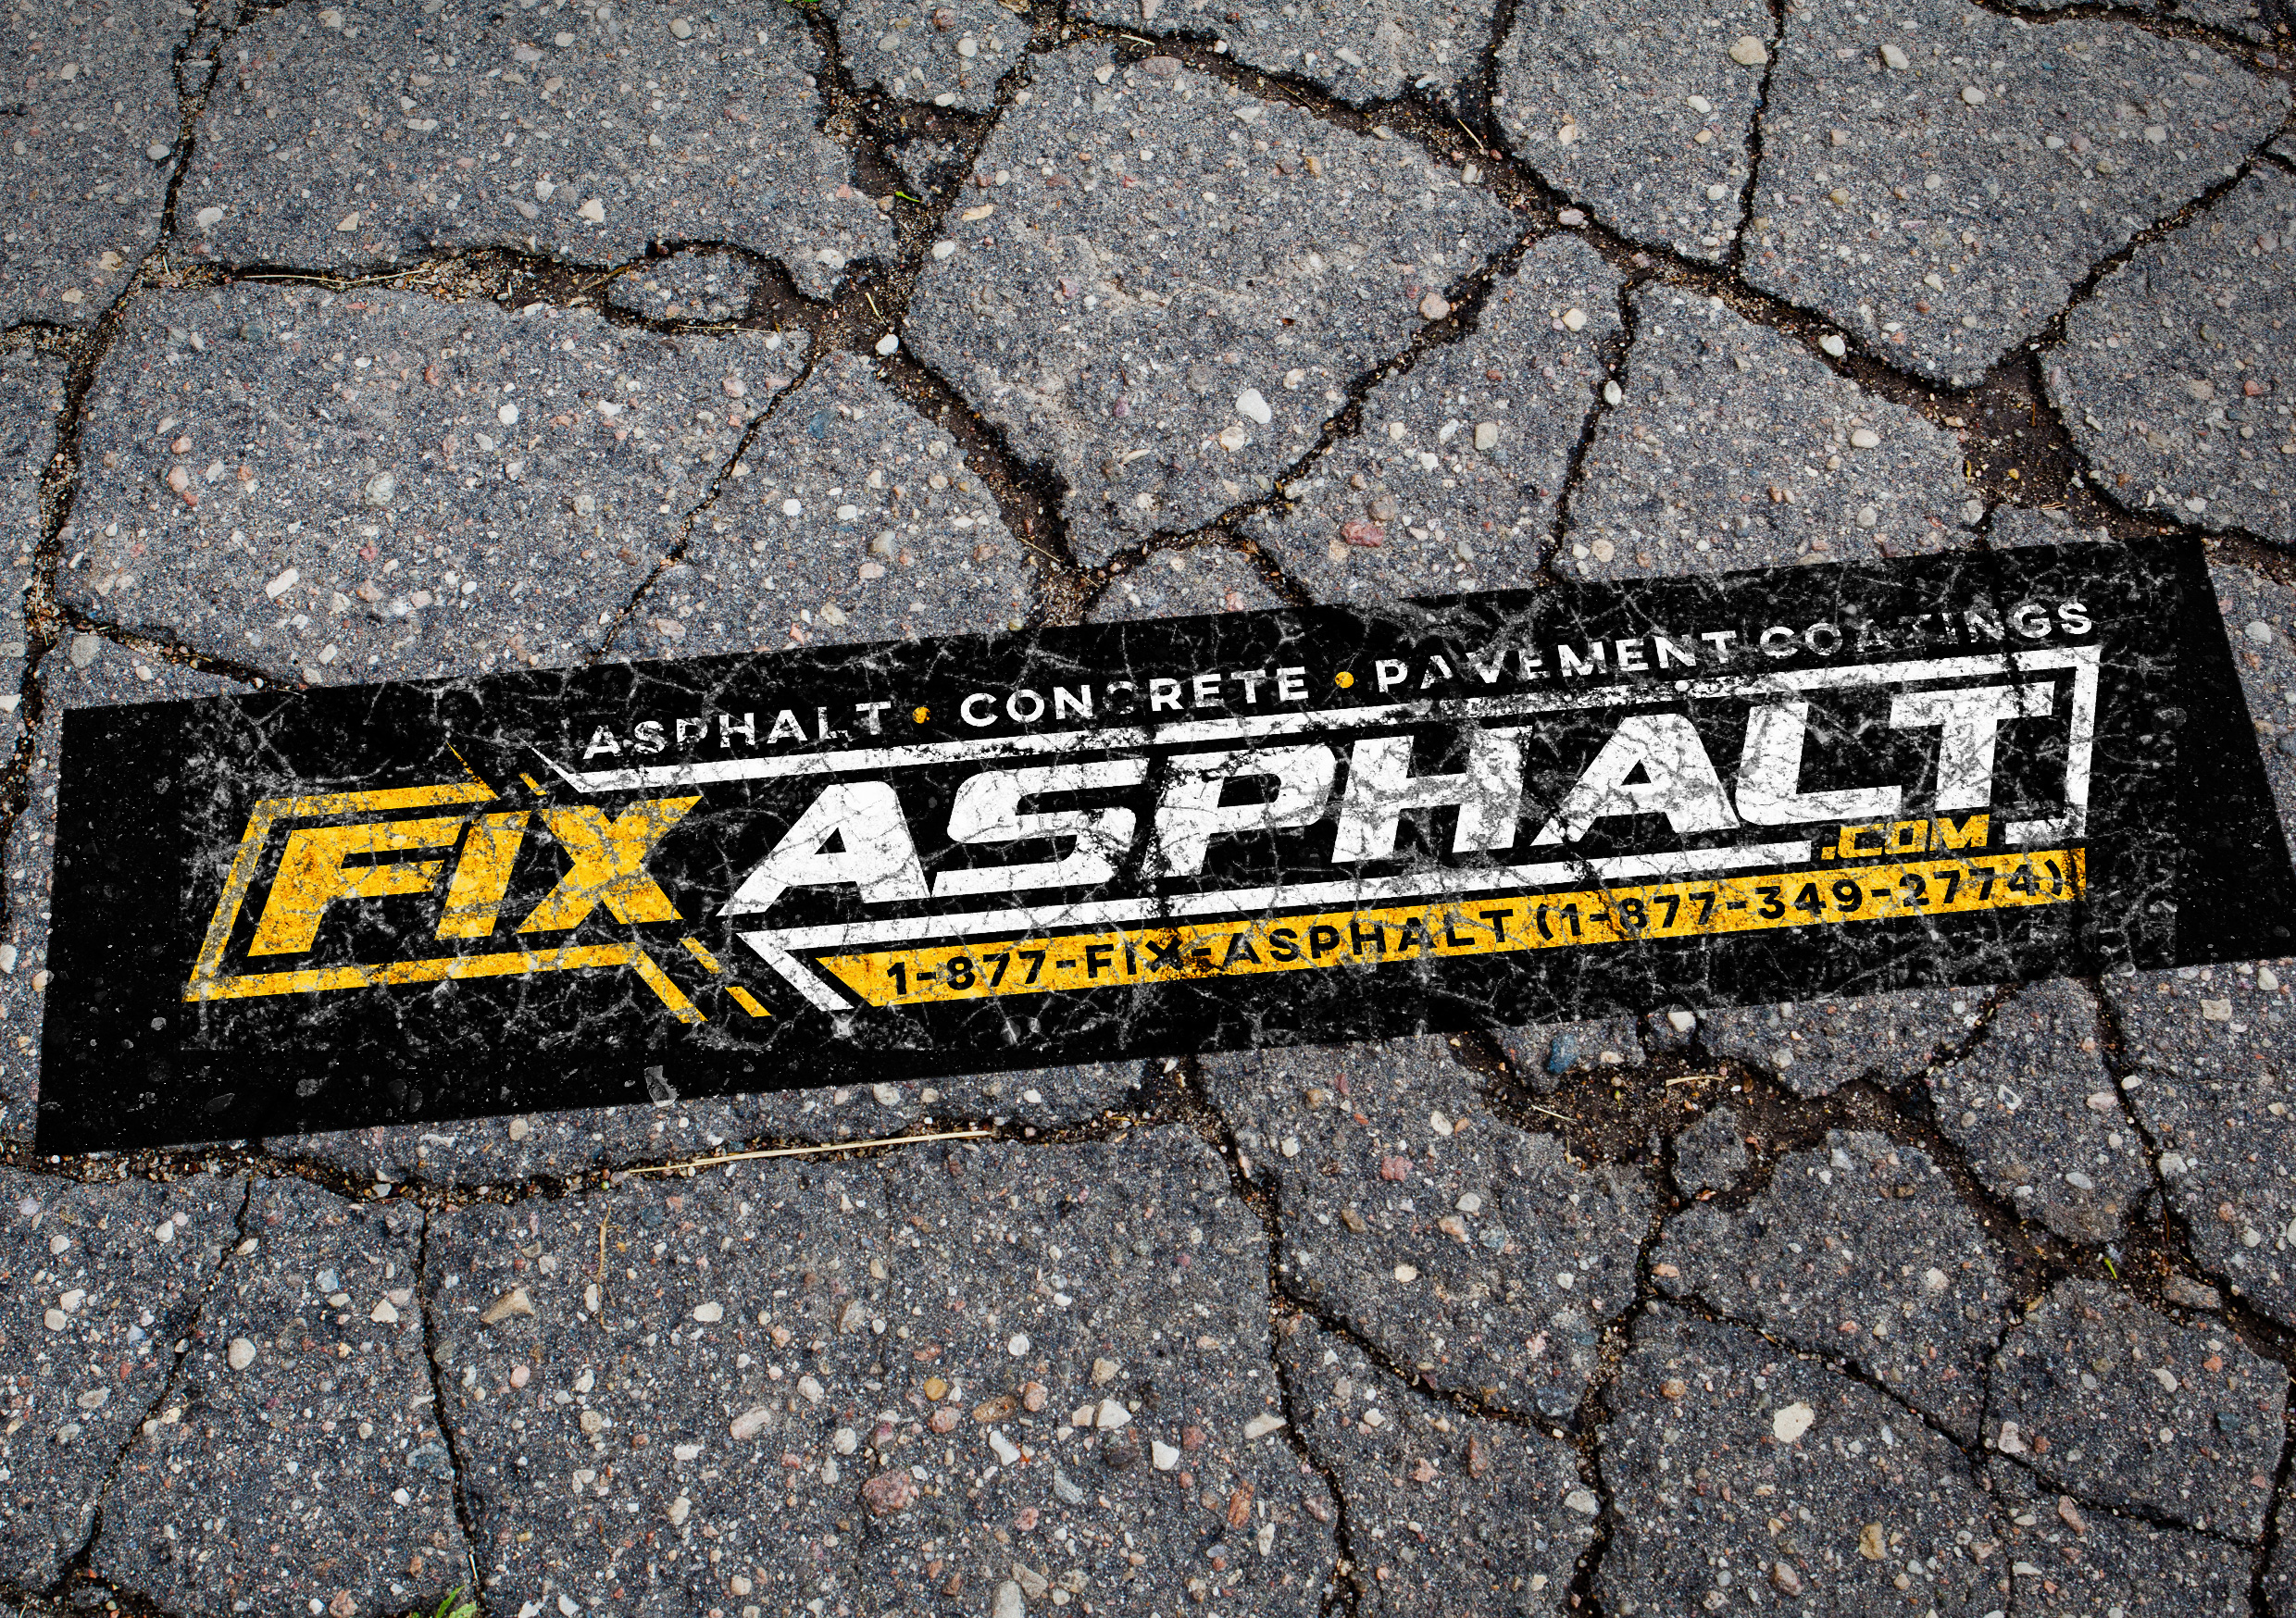 NJ Asphalt Paving